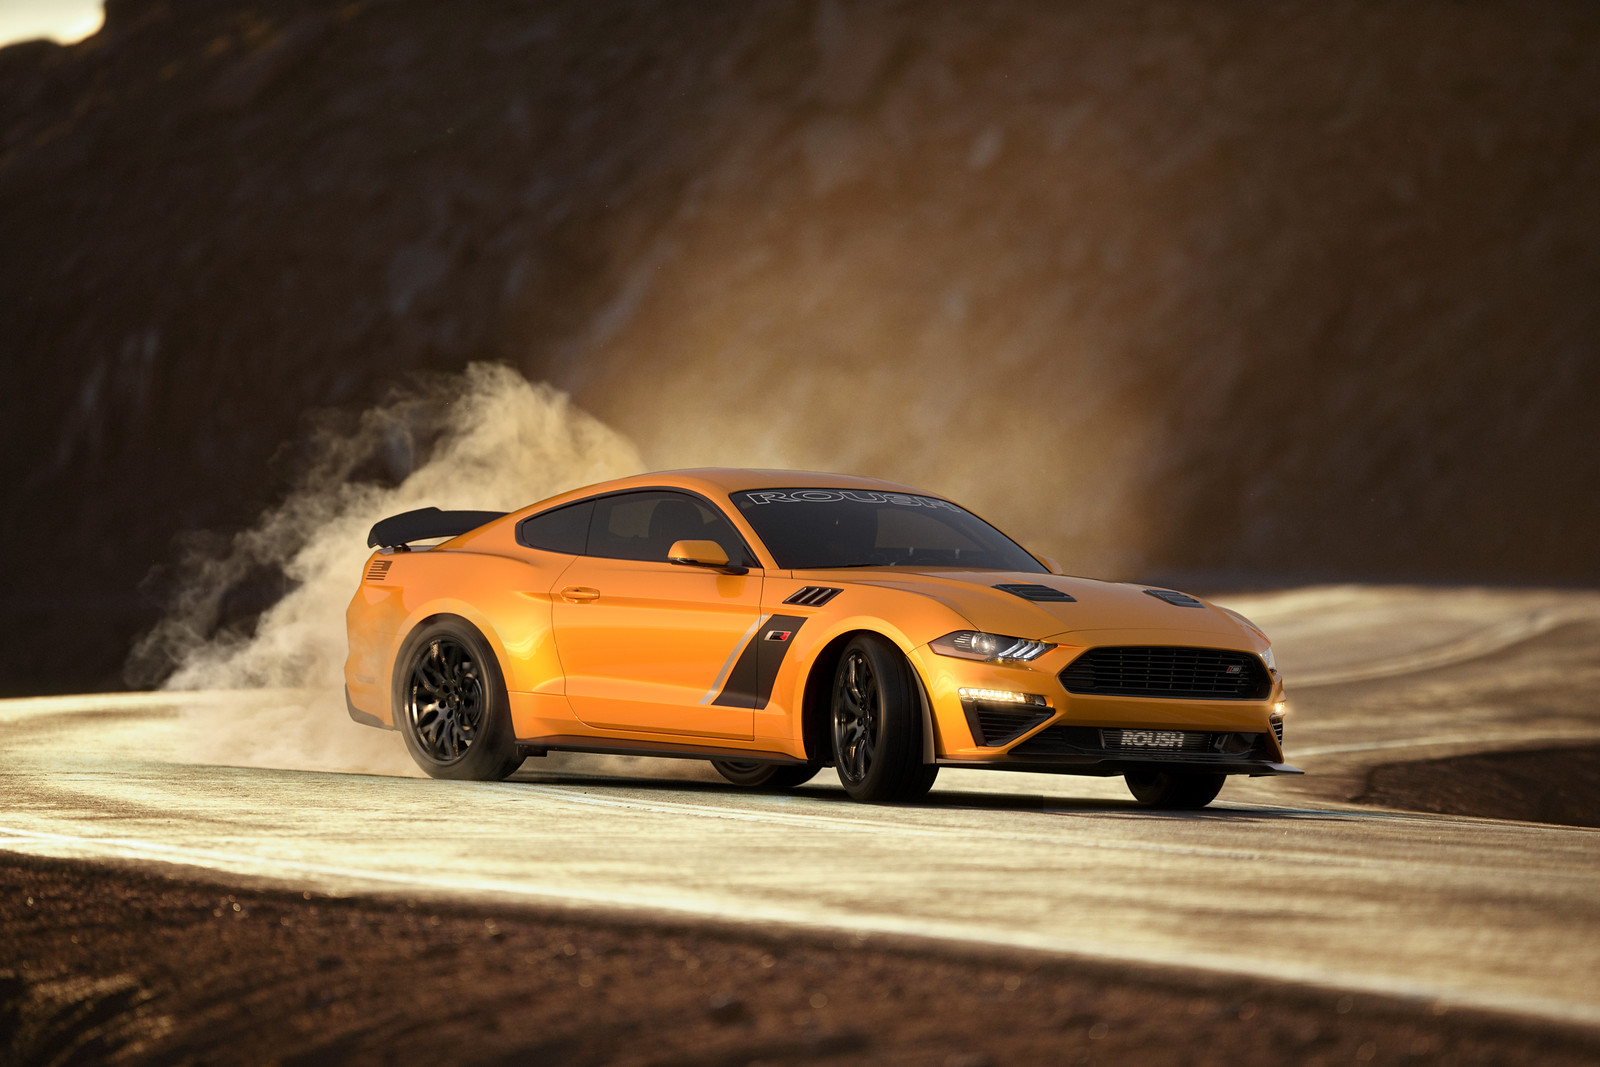 For 8k Roush Can Turn Your Mustang Gt Into A Hellcat Fighter